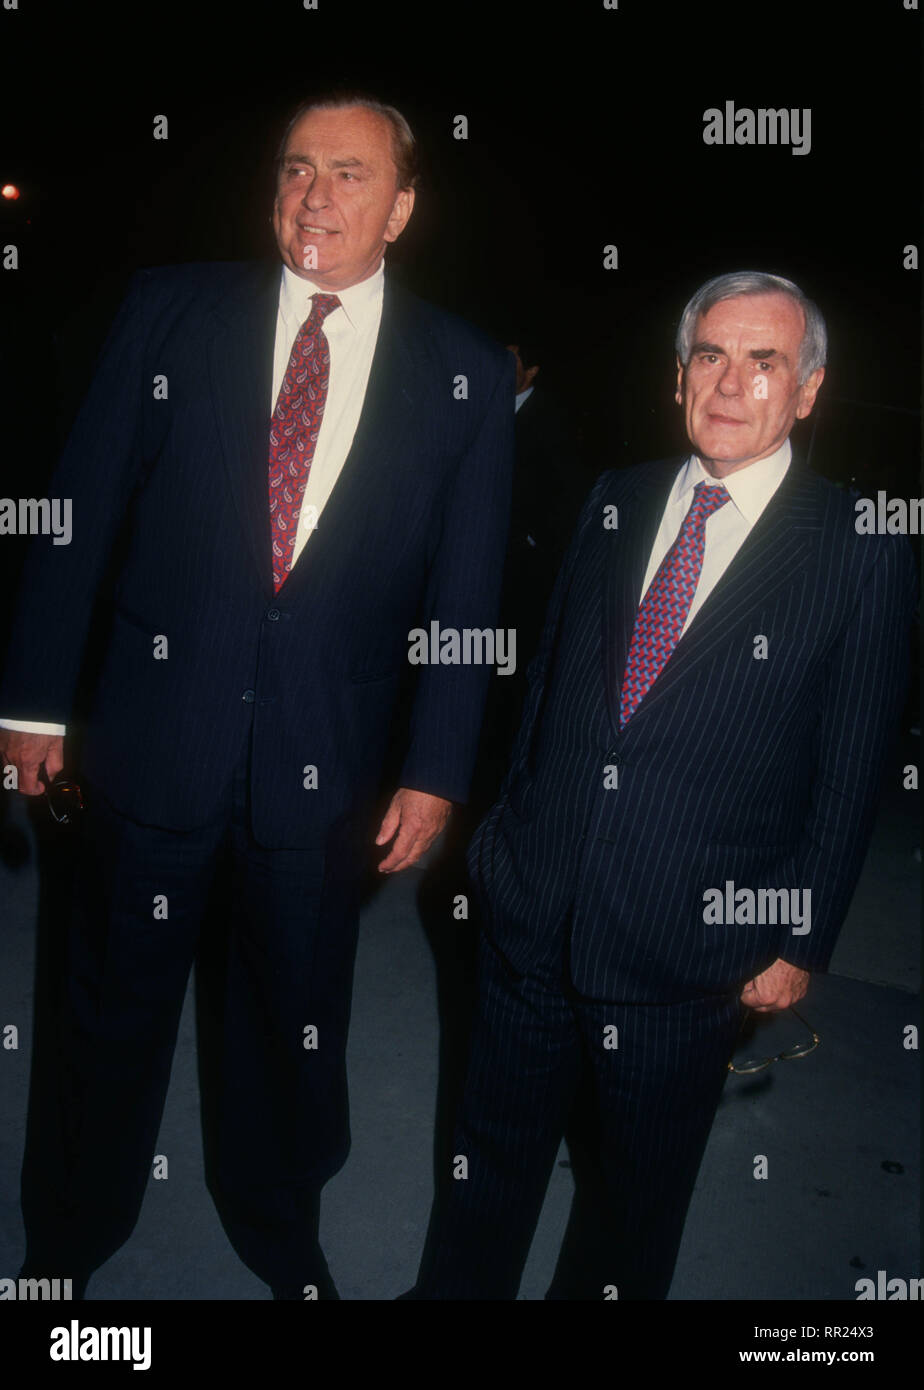 UNIVERSAL CITY, CA - JANUARY 27: Writer Gore Vidal and Journalist/writer Dominick Dunne attend APLA Commitment to Life VII Benefit on January 27, 1994 at Universal Studios in Universal City, California. Photo by Barry King/Alamy Stock Photo - Stock Image